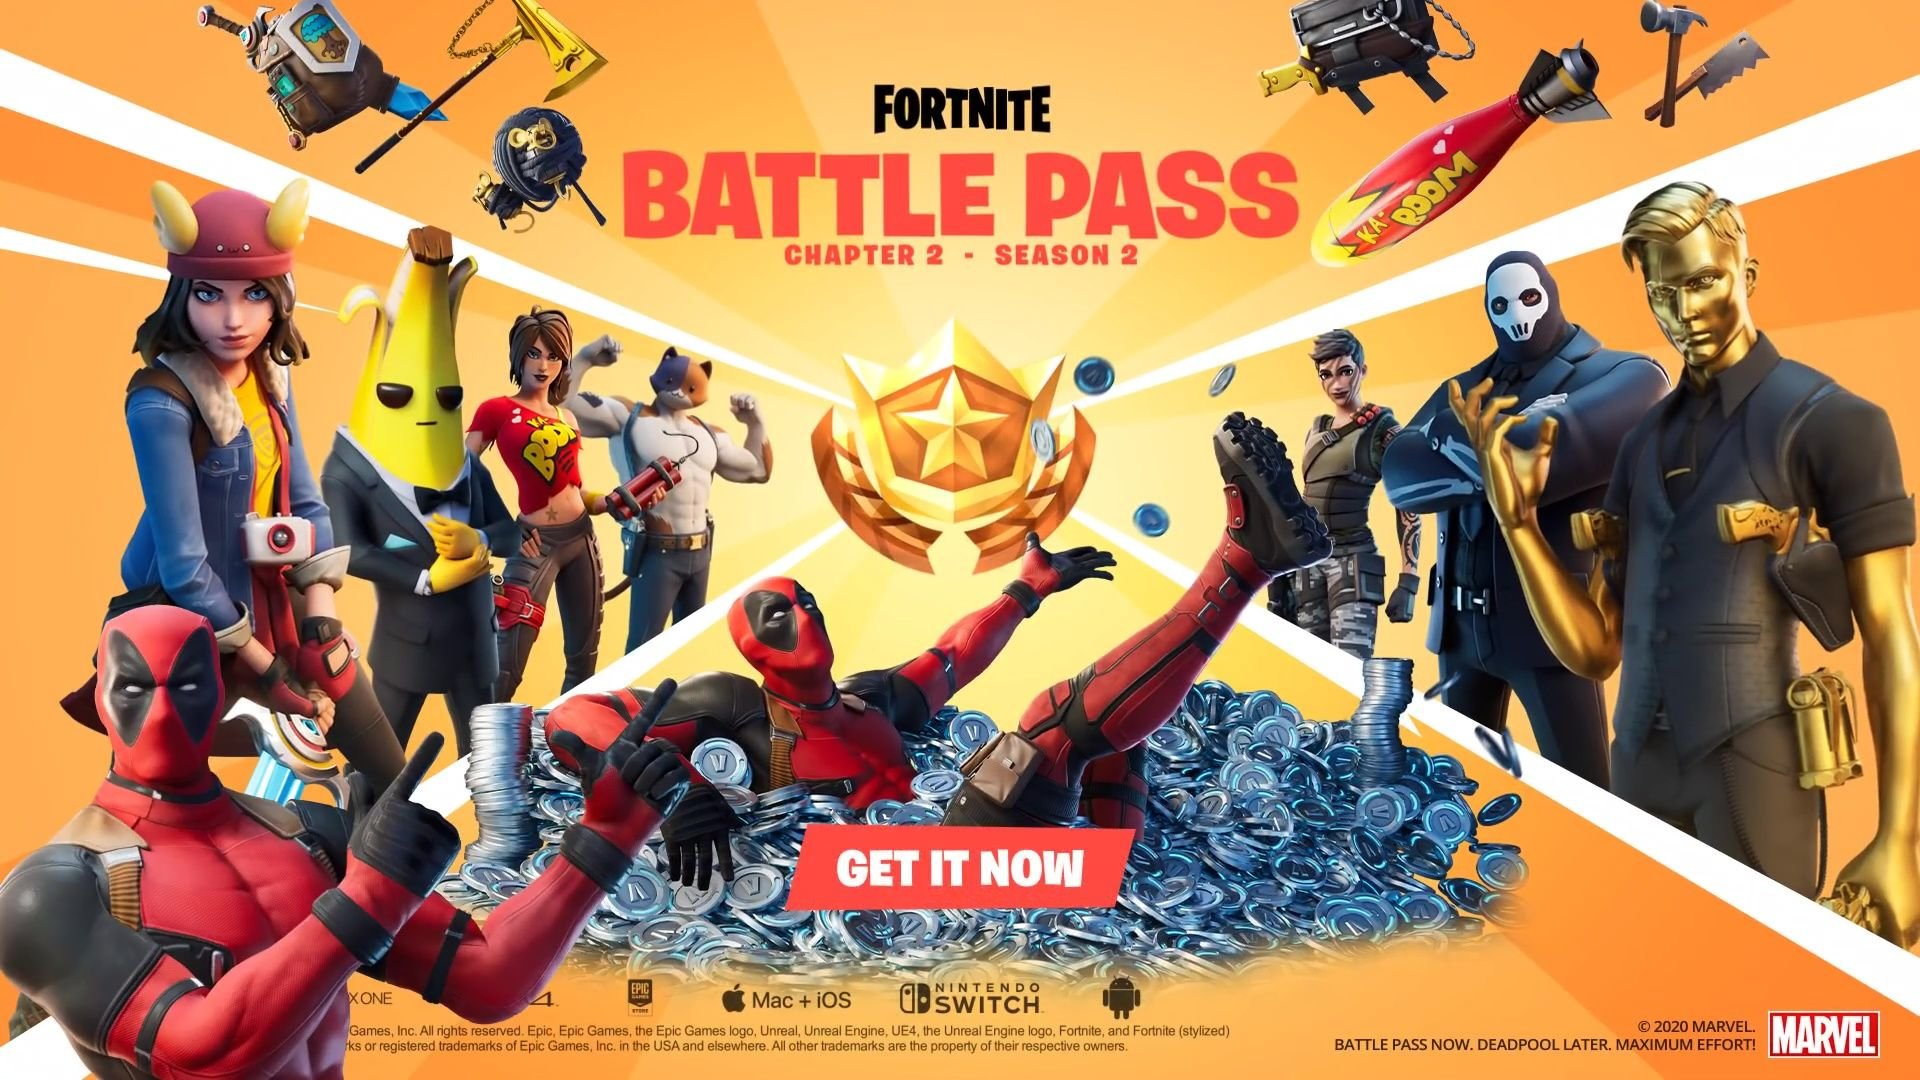 Fortnite Chapter 2 Season 2 is all about secret agents and 1920x1080